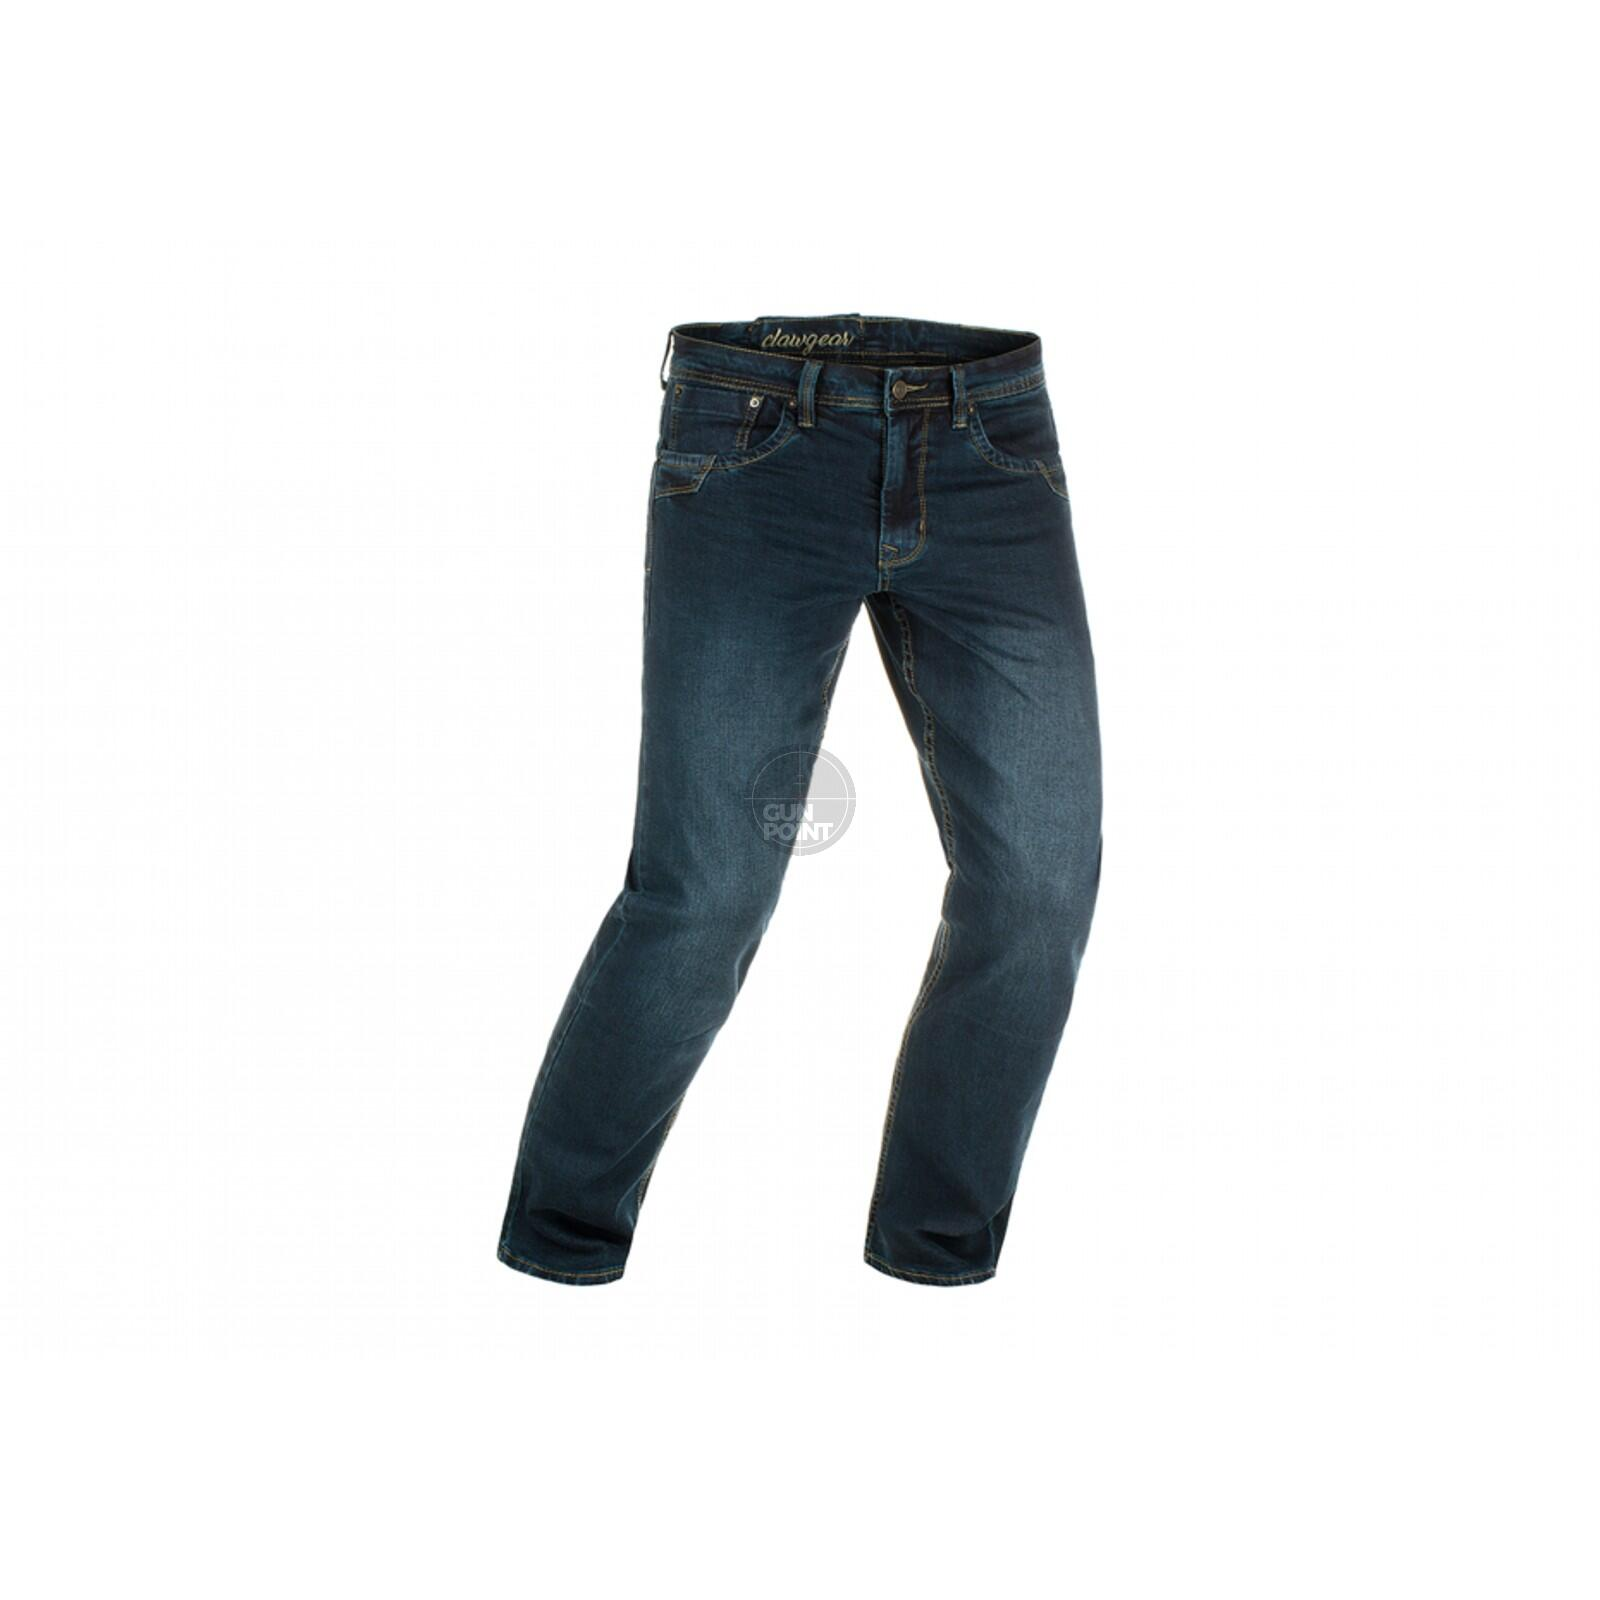 Clawgear Blue Denim Tactical Flex Jeans 34/34 Midnight Washed